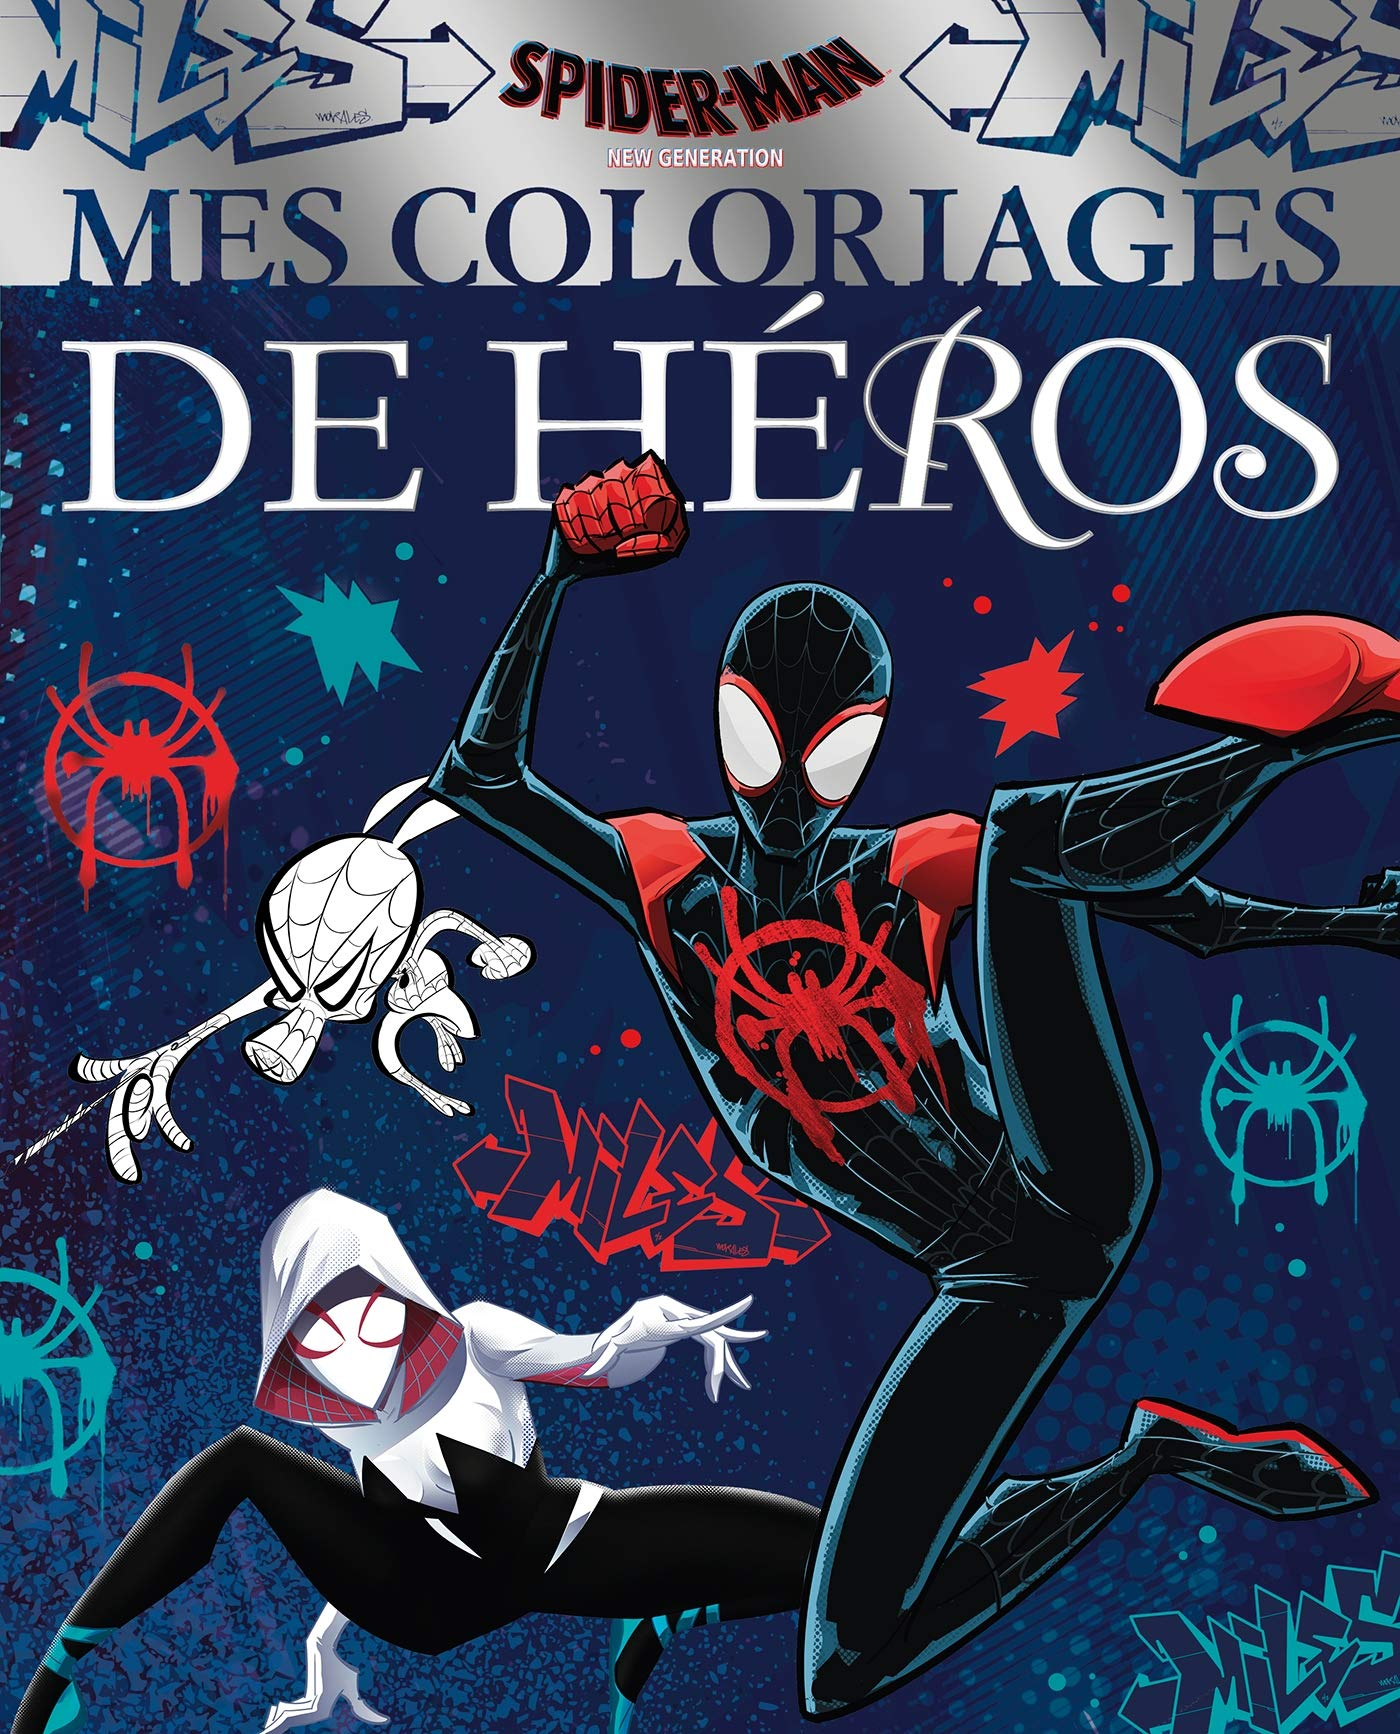 Spider Man New Generation Mes Coloriages De Heros Marvel